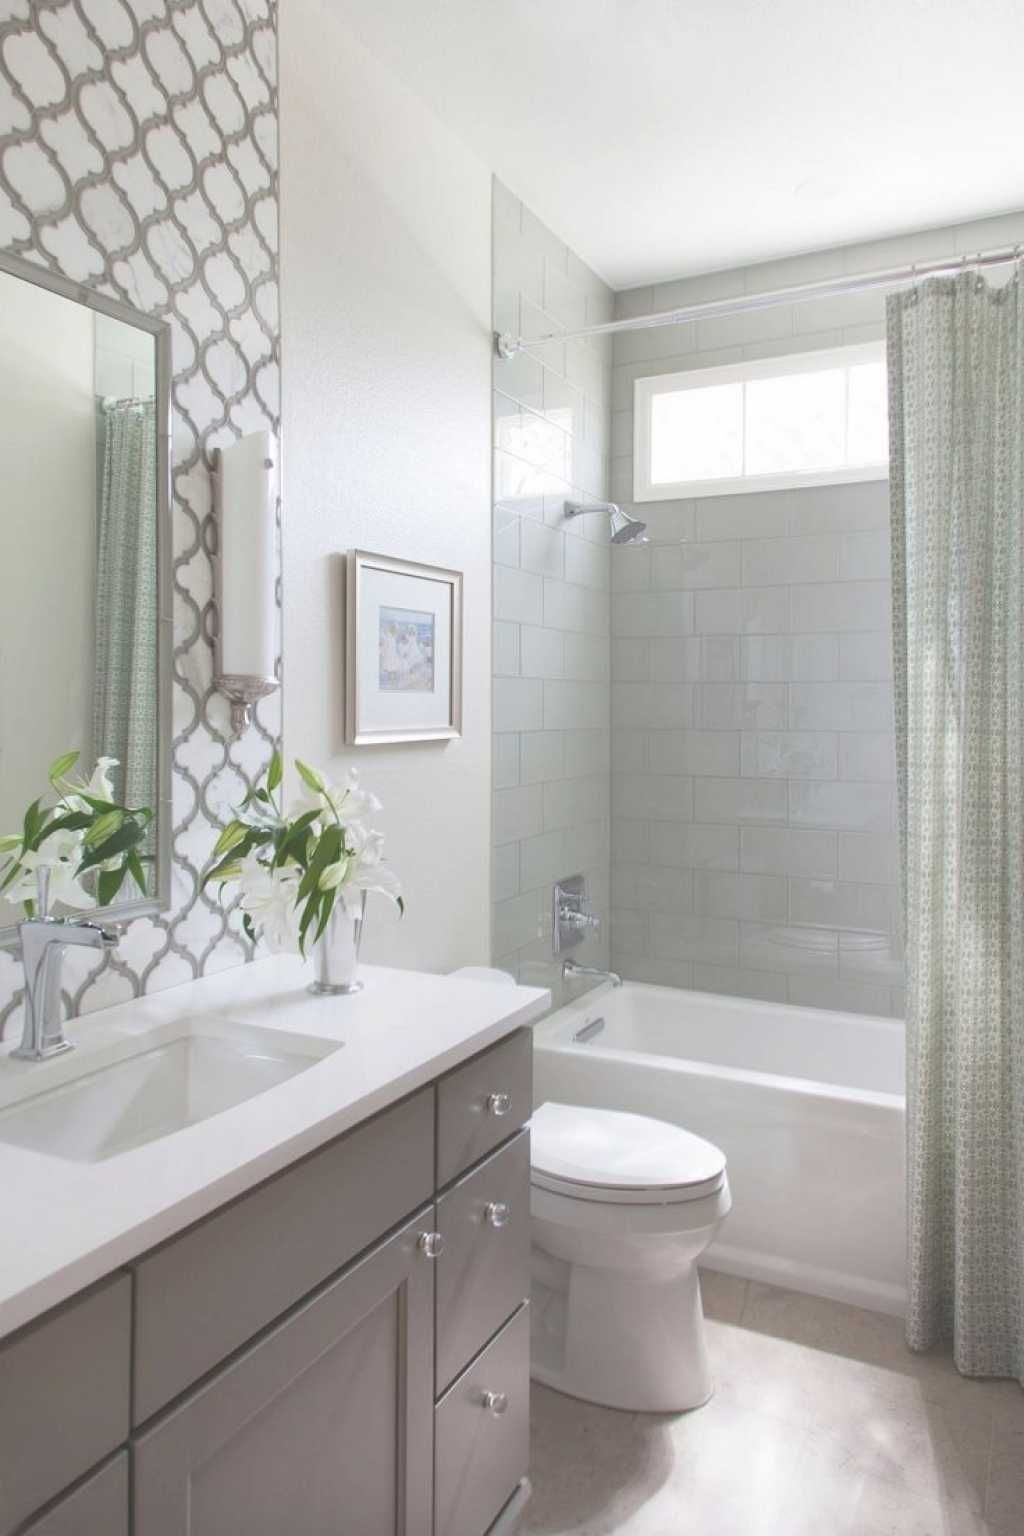 Small Bathroom Tub Shower Combo Remodeling Ideas Http://zoladecor.com/small  Bathroom Tub Shower Combo Remodeling Ideas